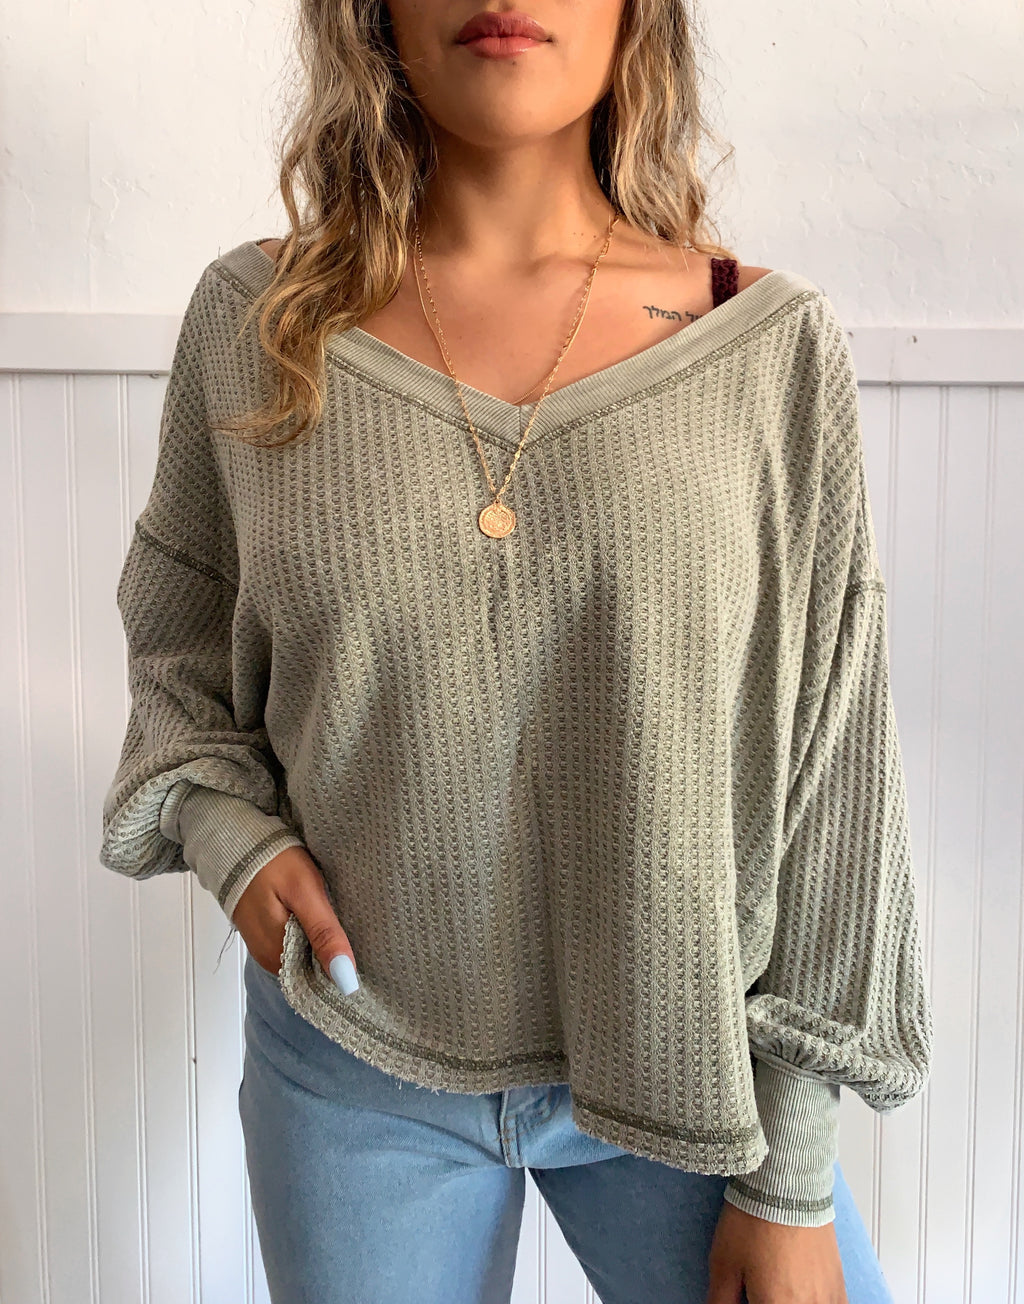 Whitney Knit Top (Olive)